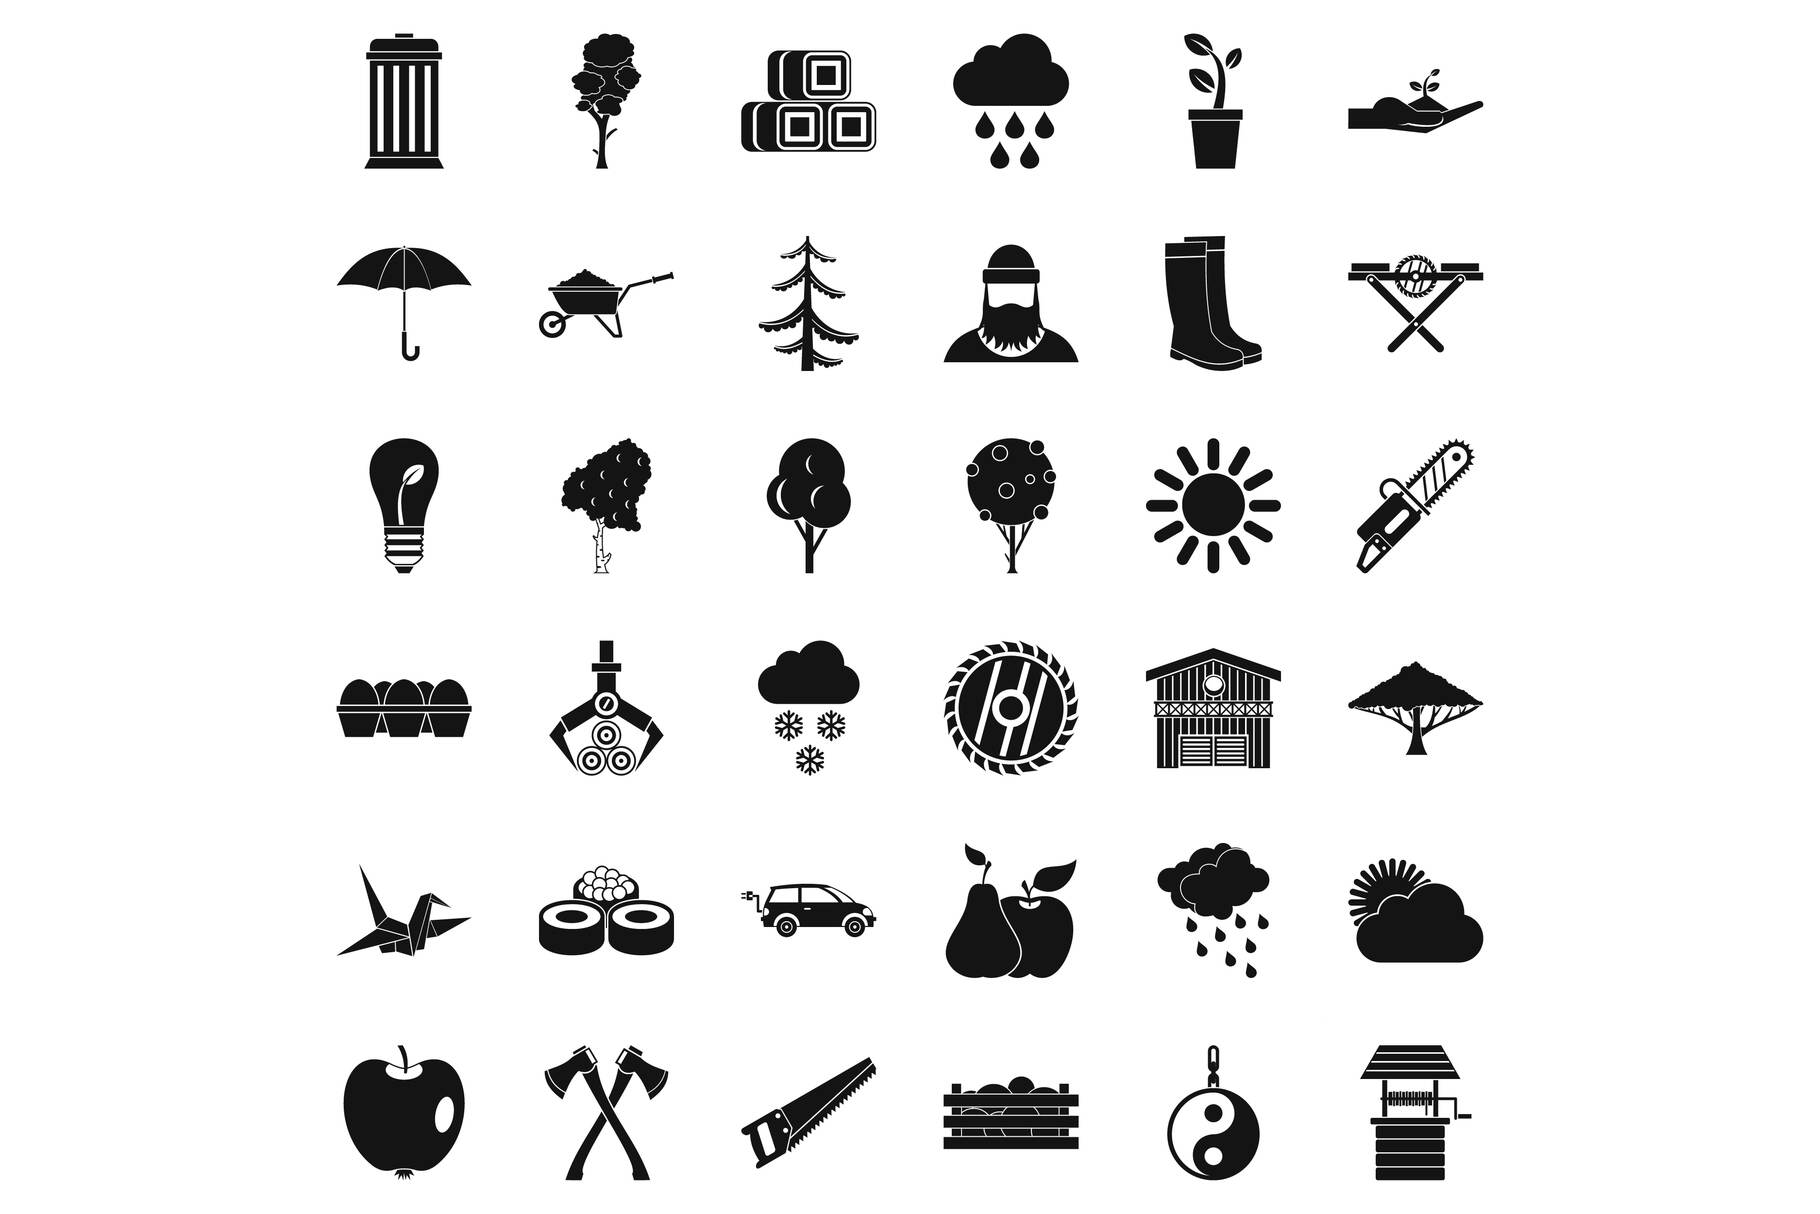 Tree icons set, simple style example image 1